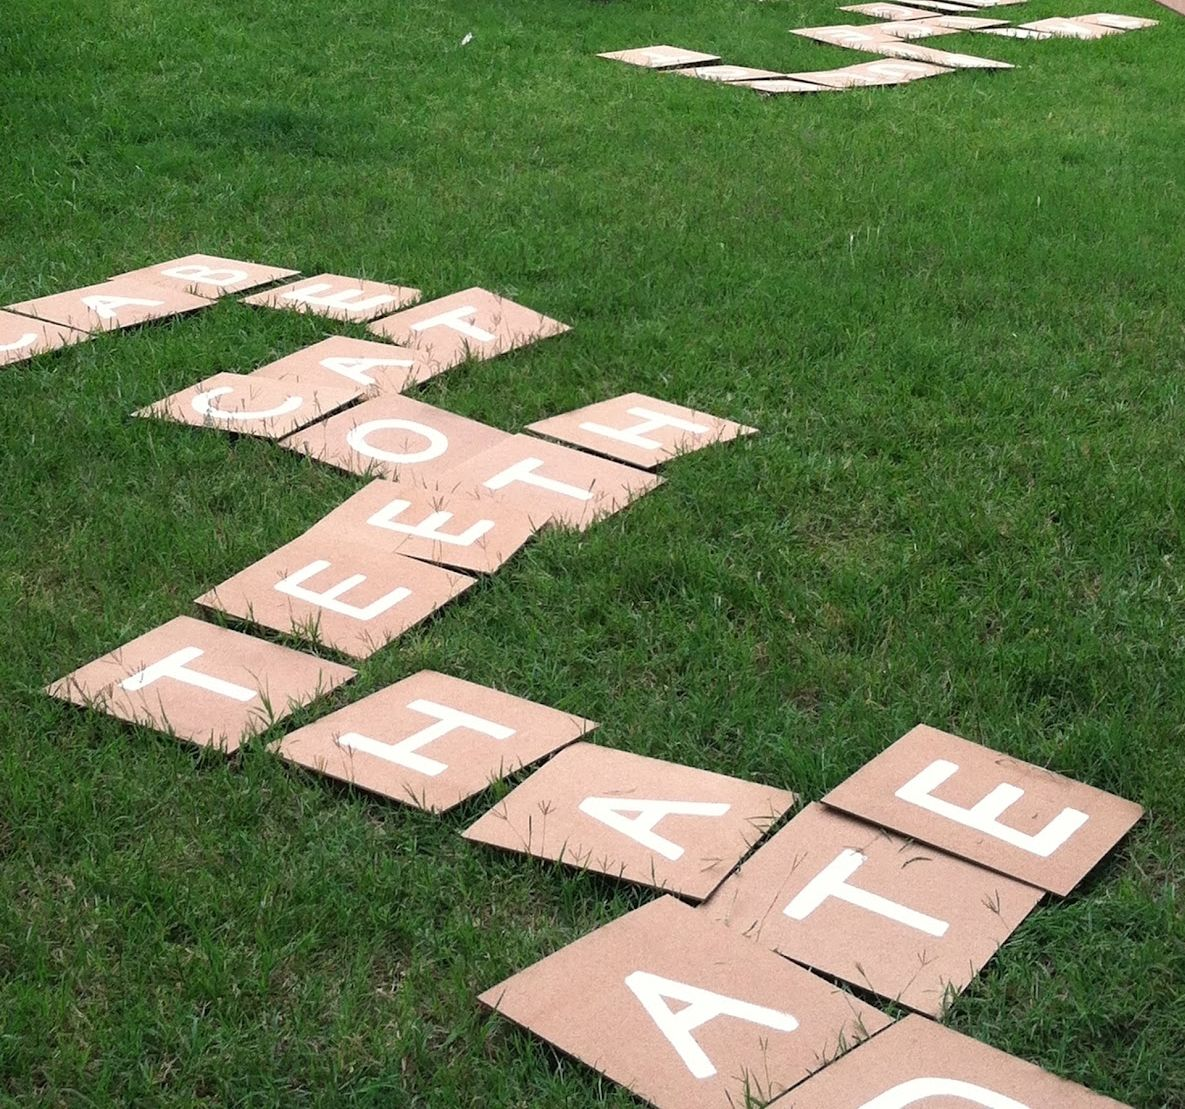 Learn how to make liquid sidewalk chalk, a backyard fort, and play backyard  scrabble to make this summer tons of fun!